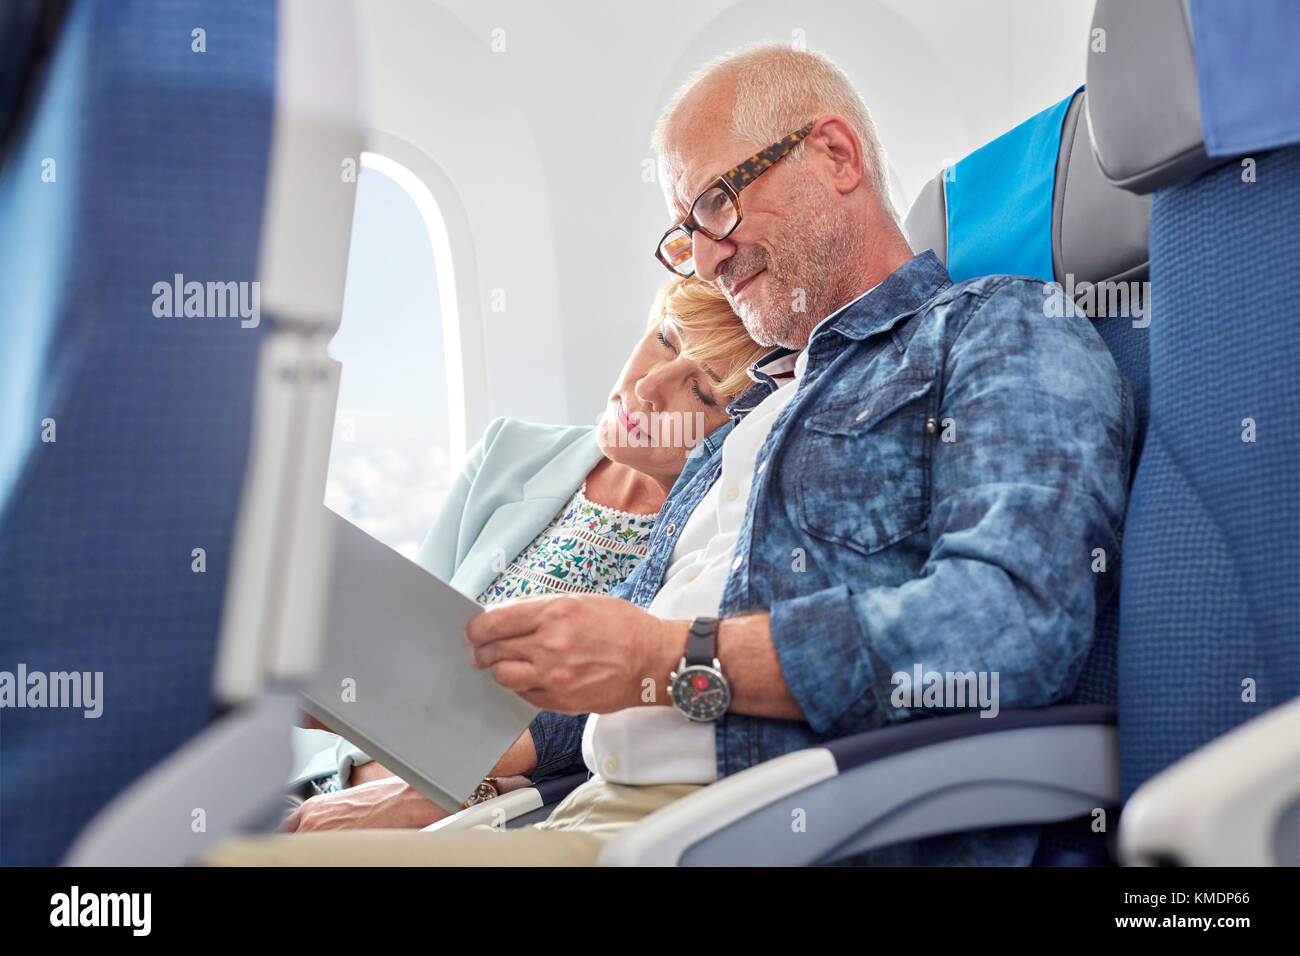 Affectionate mature couple sleeping and reading on airplane - Stock Image